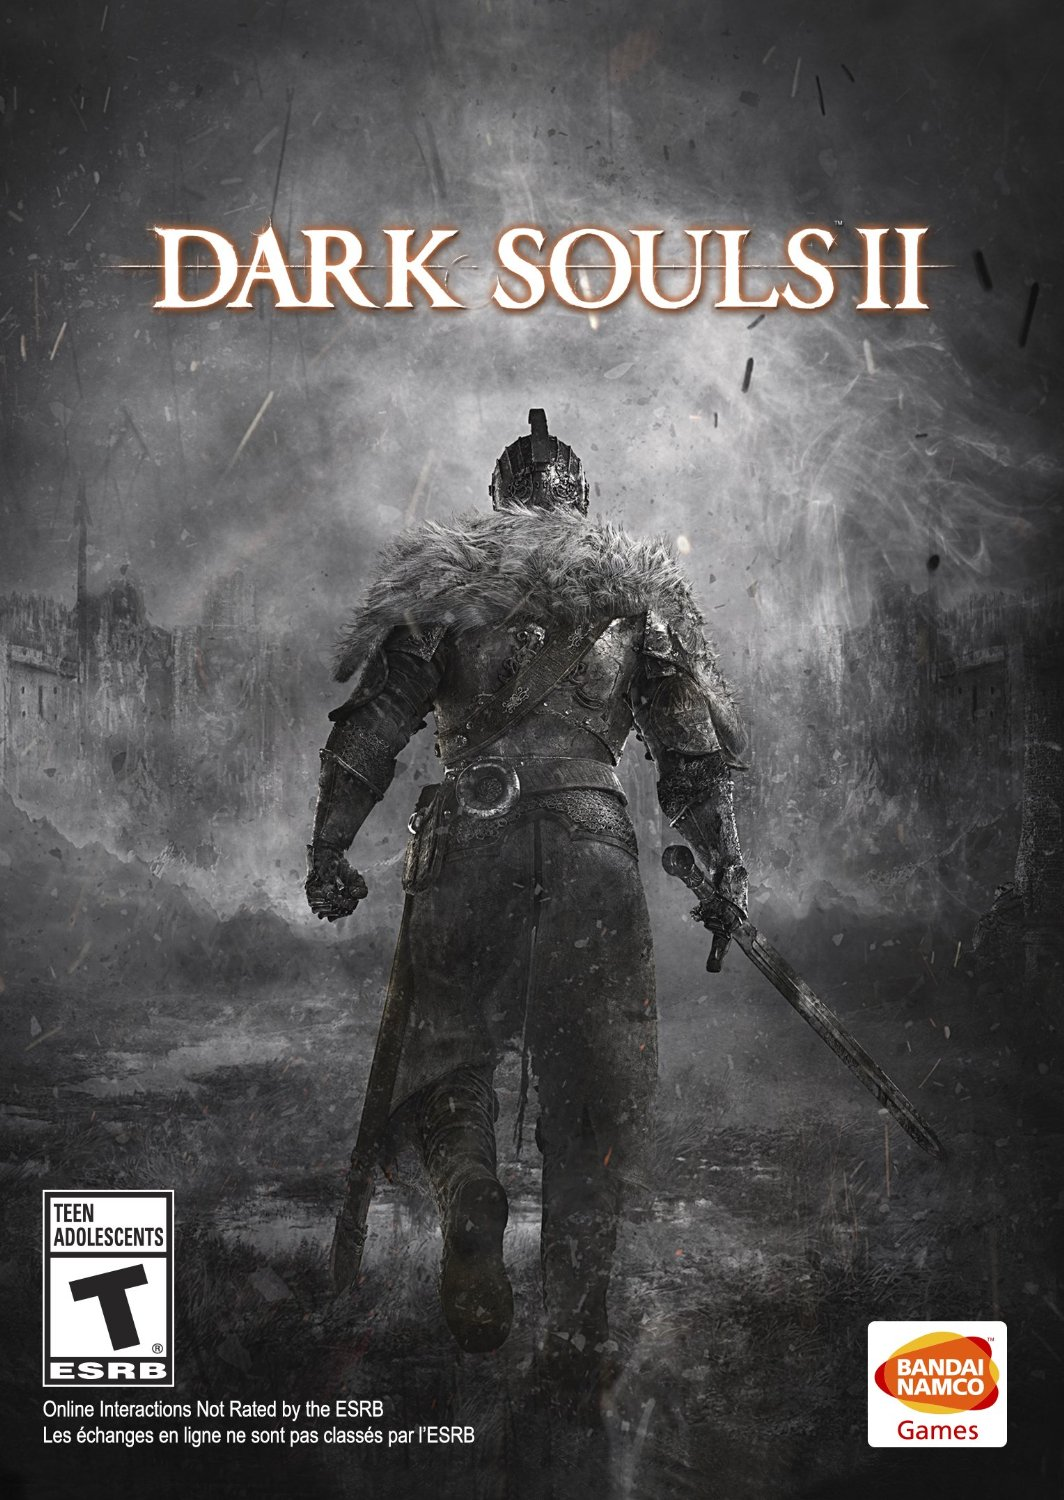 Dark Souls 2 PC Game Full Version [Free] Download